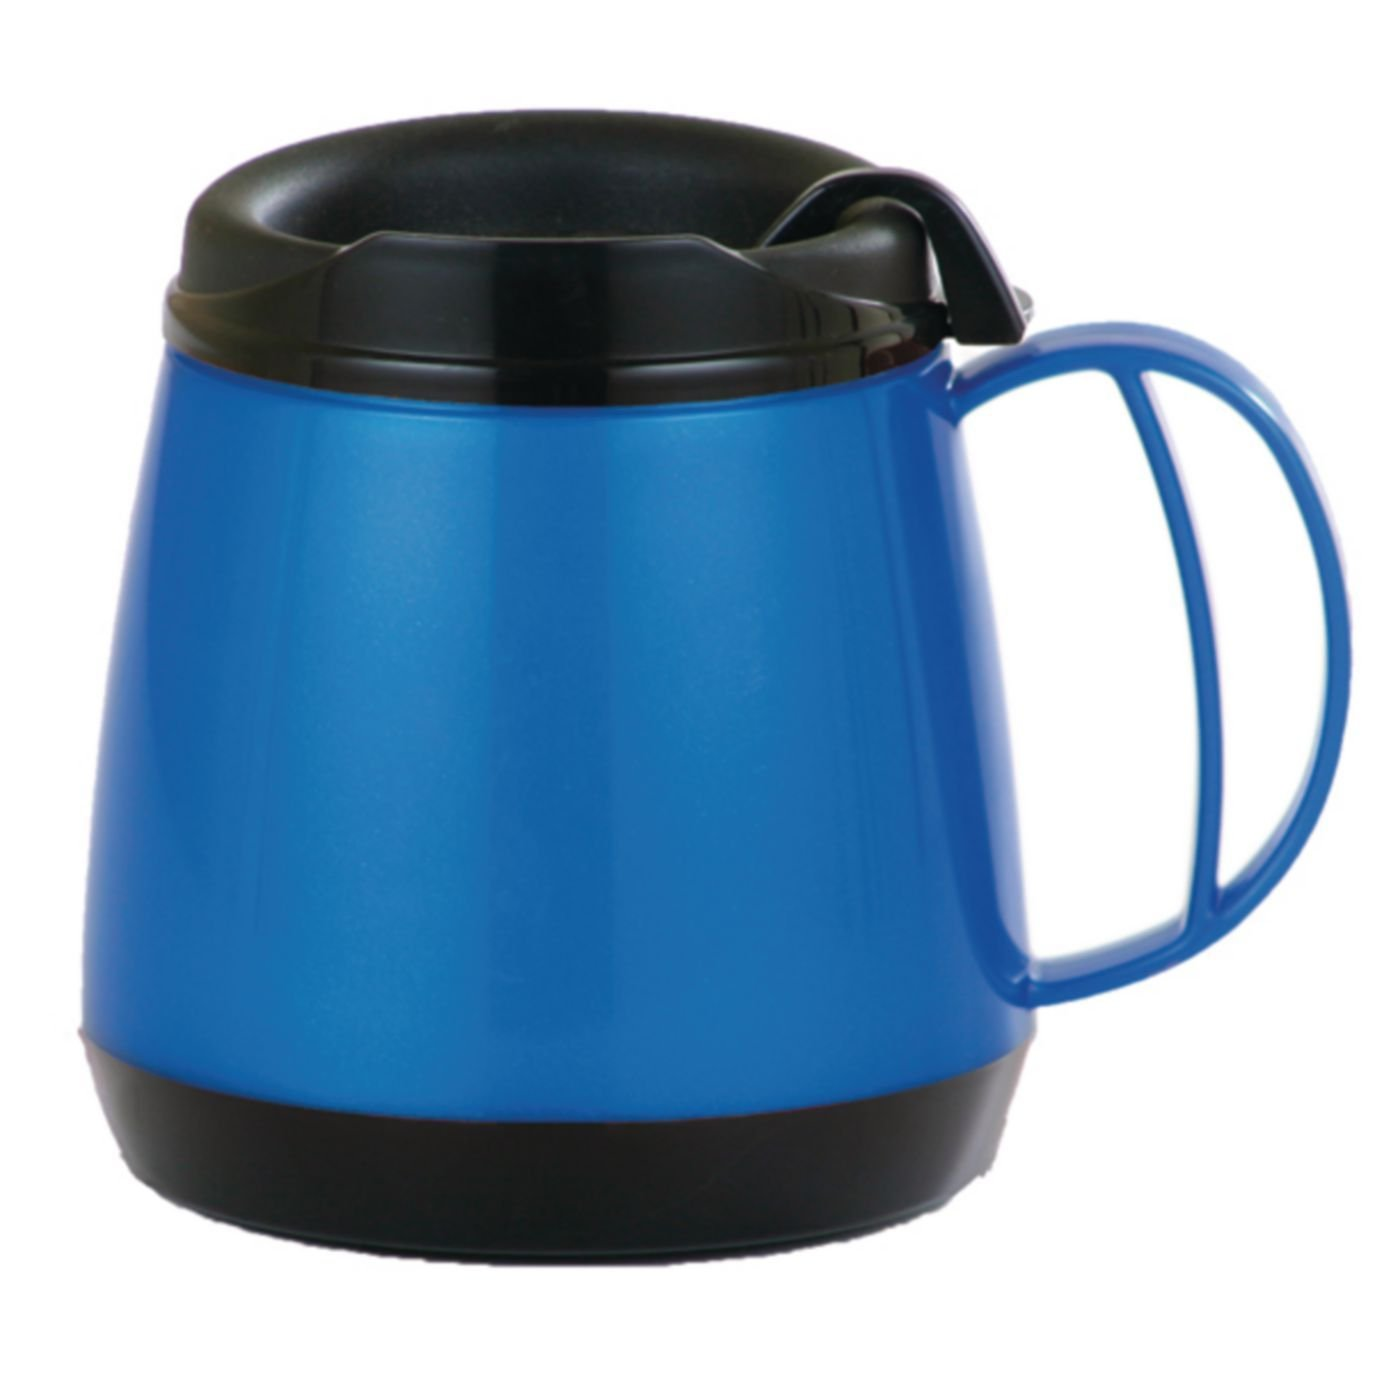 Sammons Preston Wide Body Thermo Mug, 20 oz, Blue, Foam Insulation Maintains Temperature of Hot & Cold Drinks, Durable Cup with Unbreakable Plastic Lining, Dent & Rust Proof, Ergonomic Handle